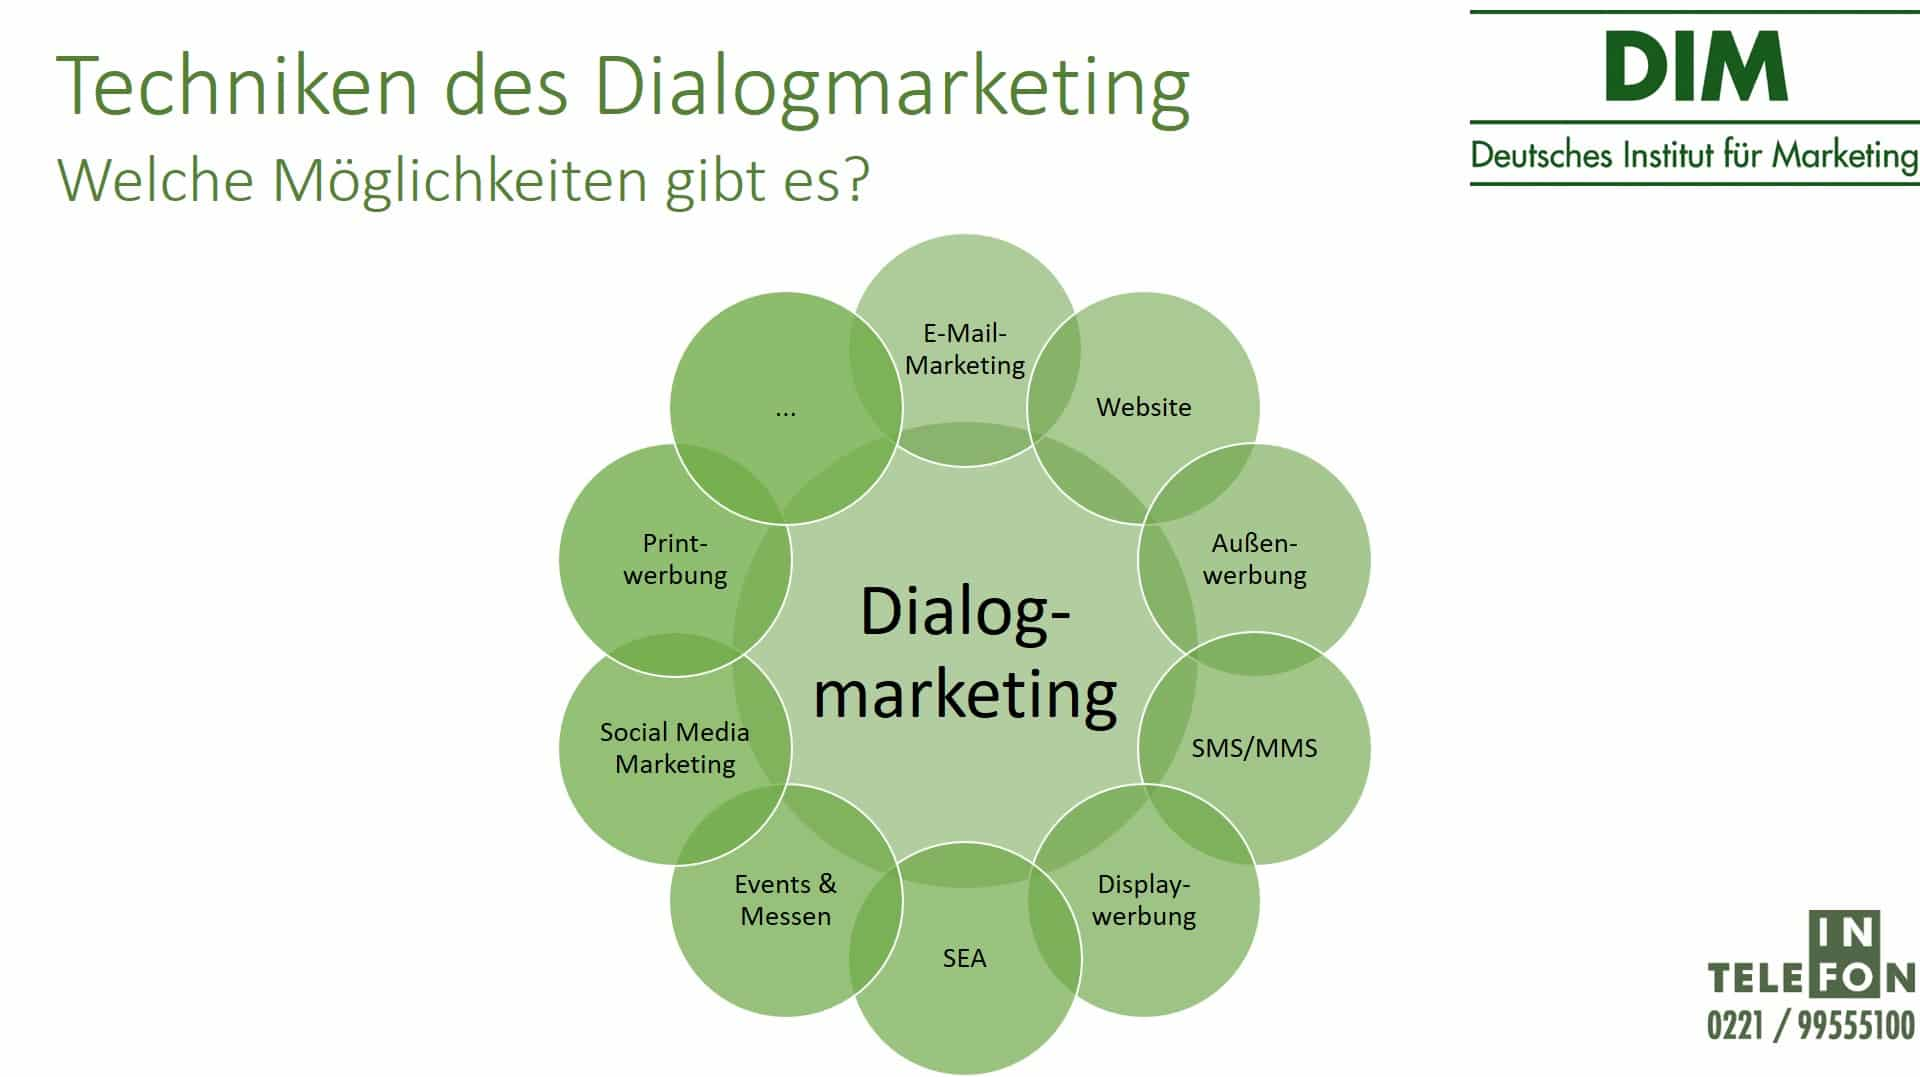 Techniken des Dialogmarketing